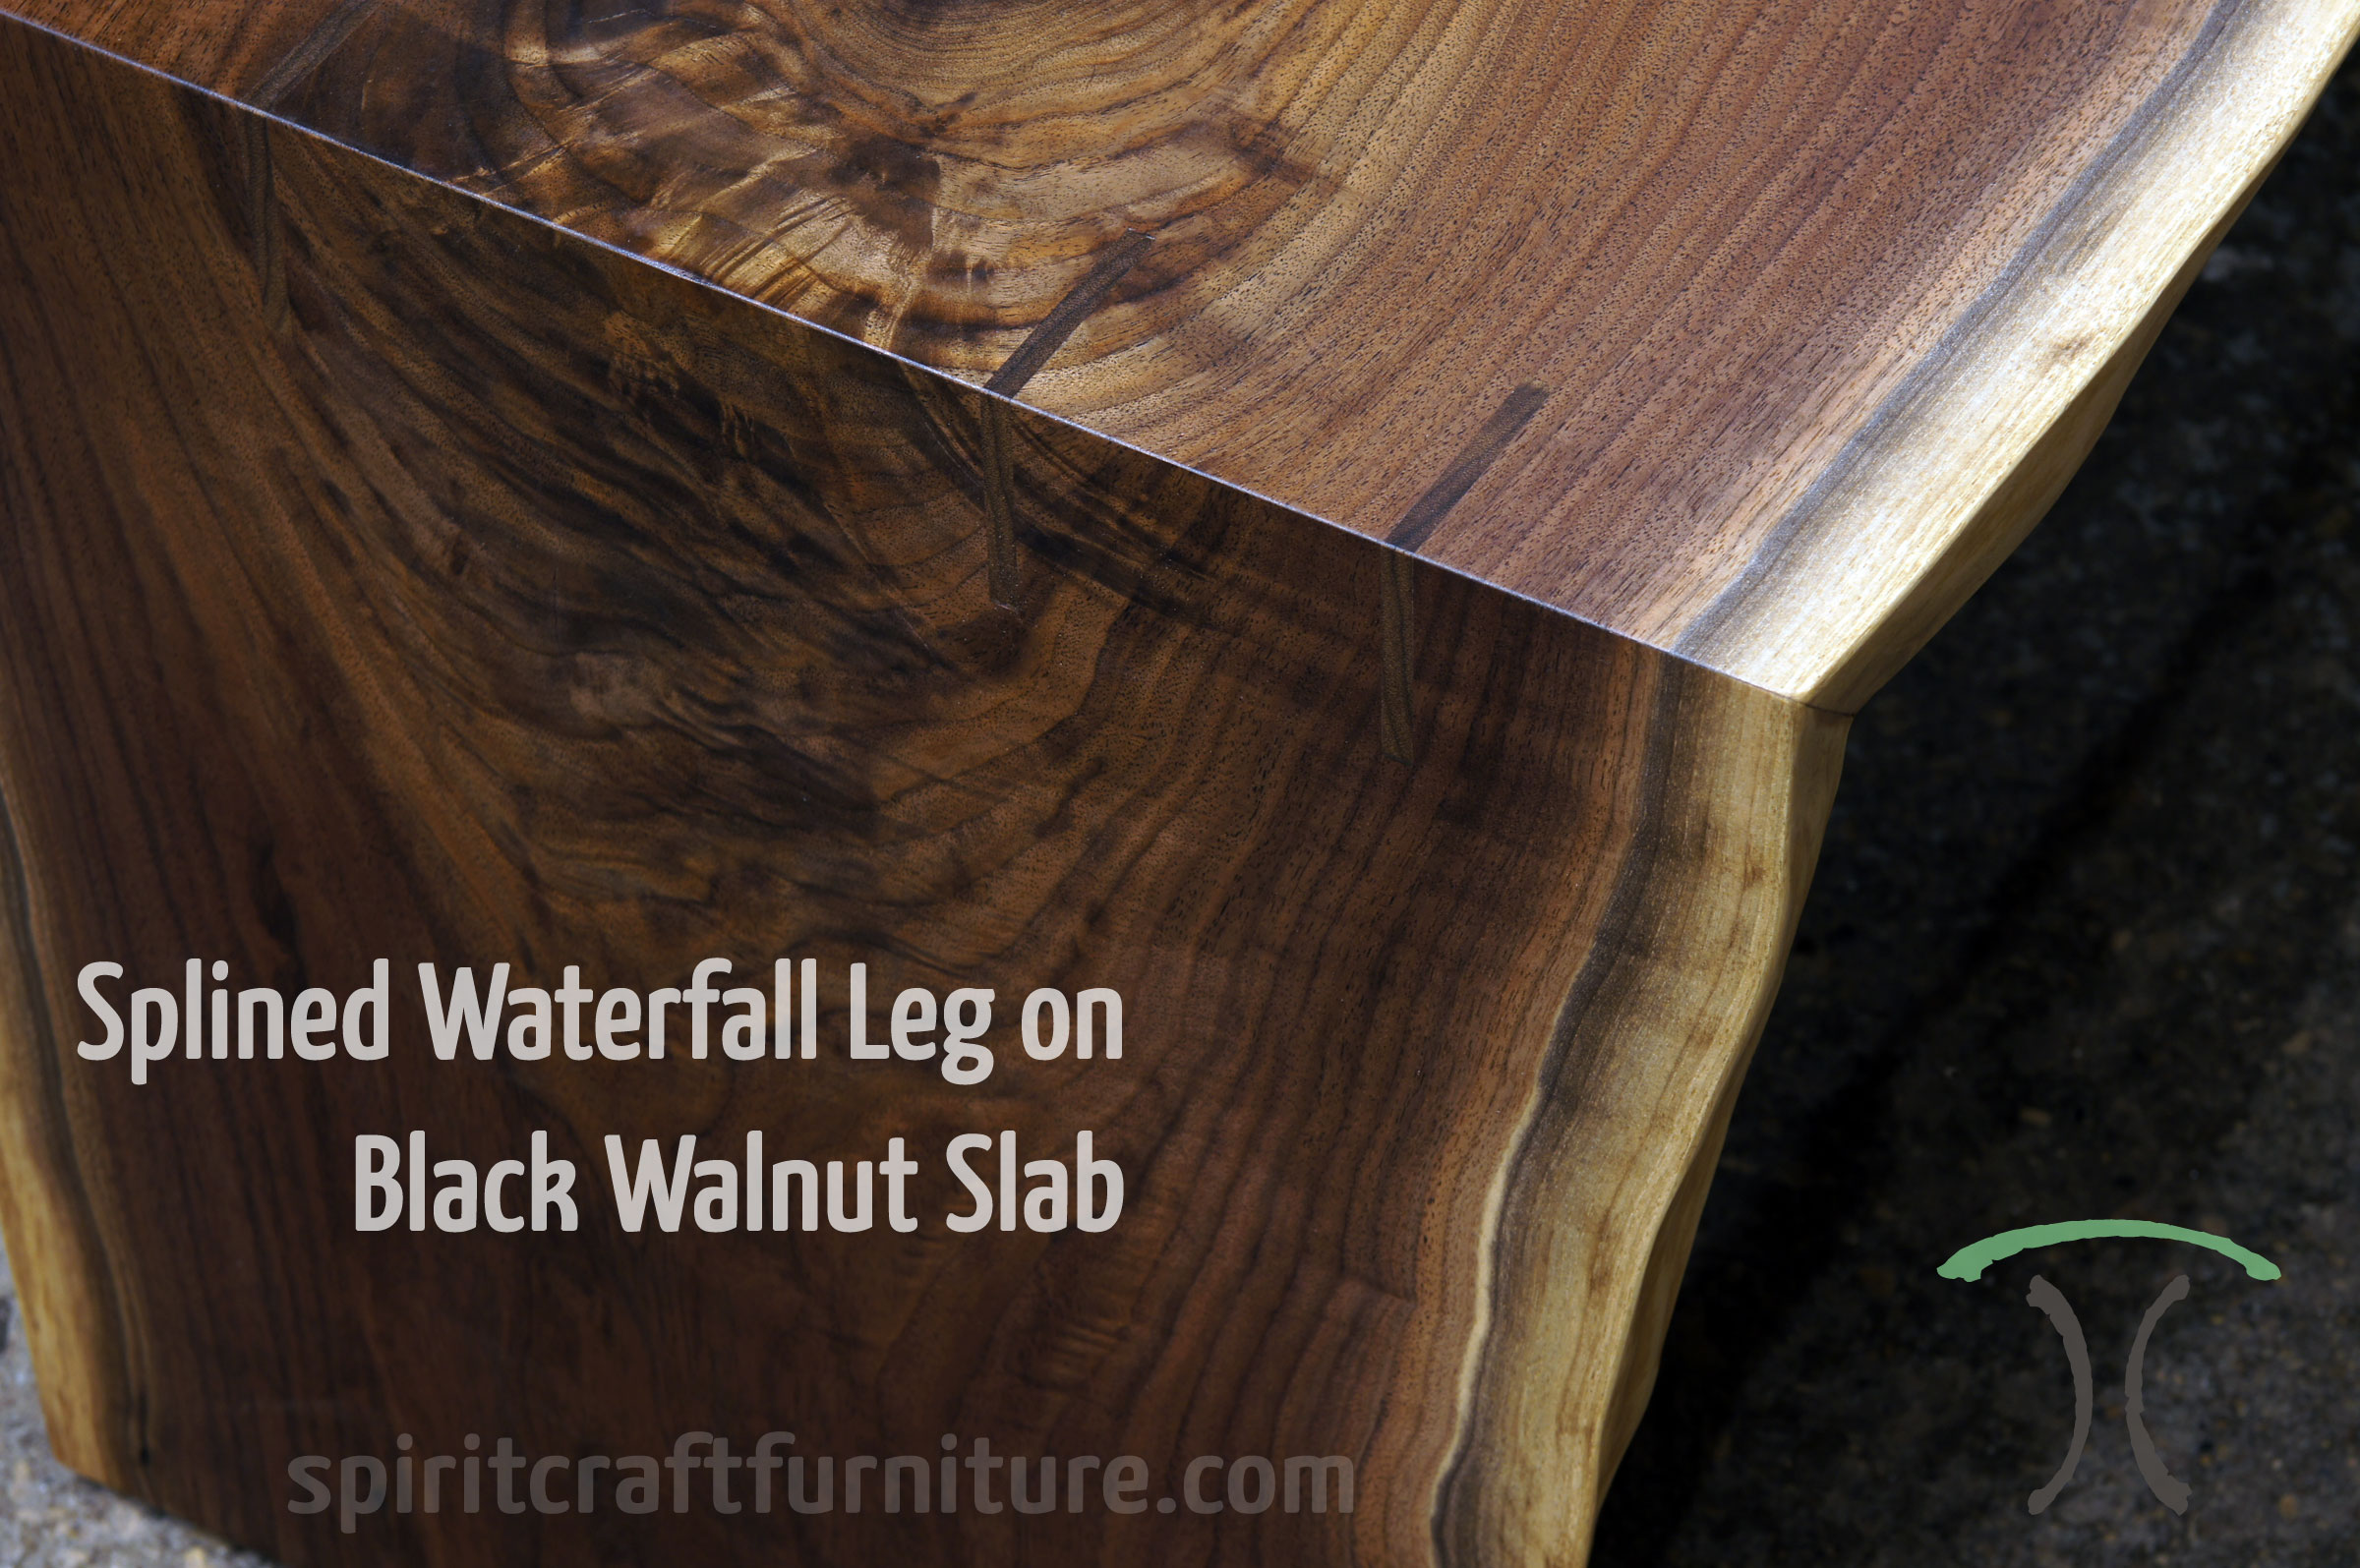 Solid Black Walnut live edge Waterfall Coffee Table with perfect miter joint and walnut splines.